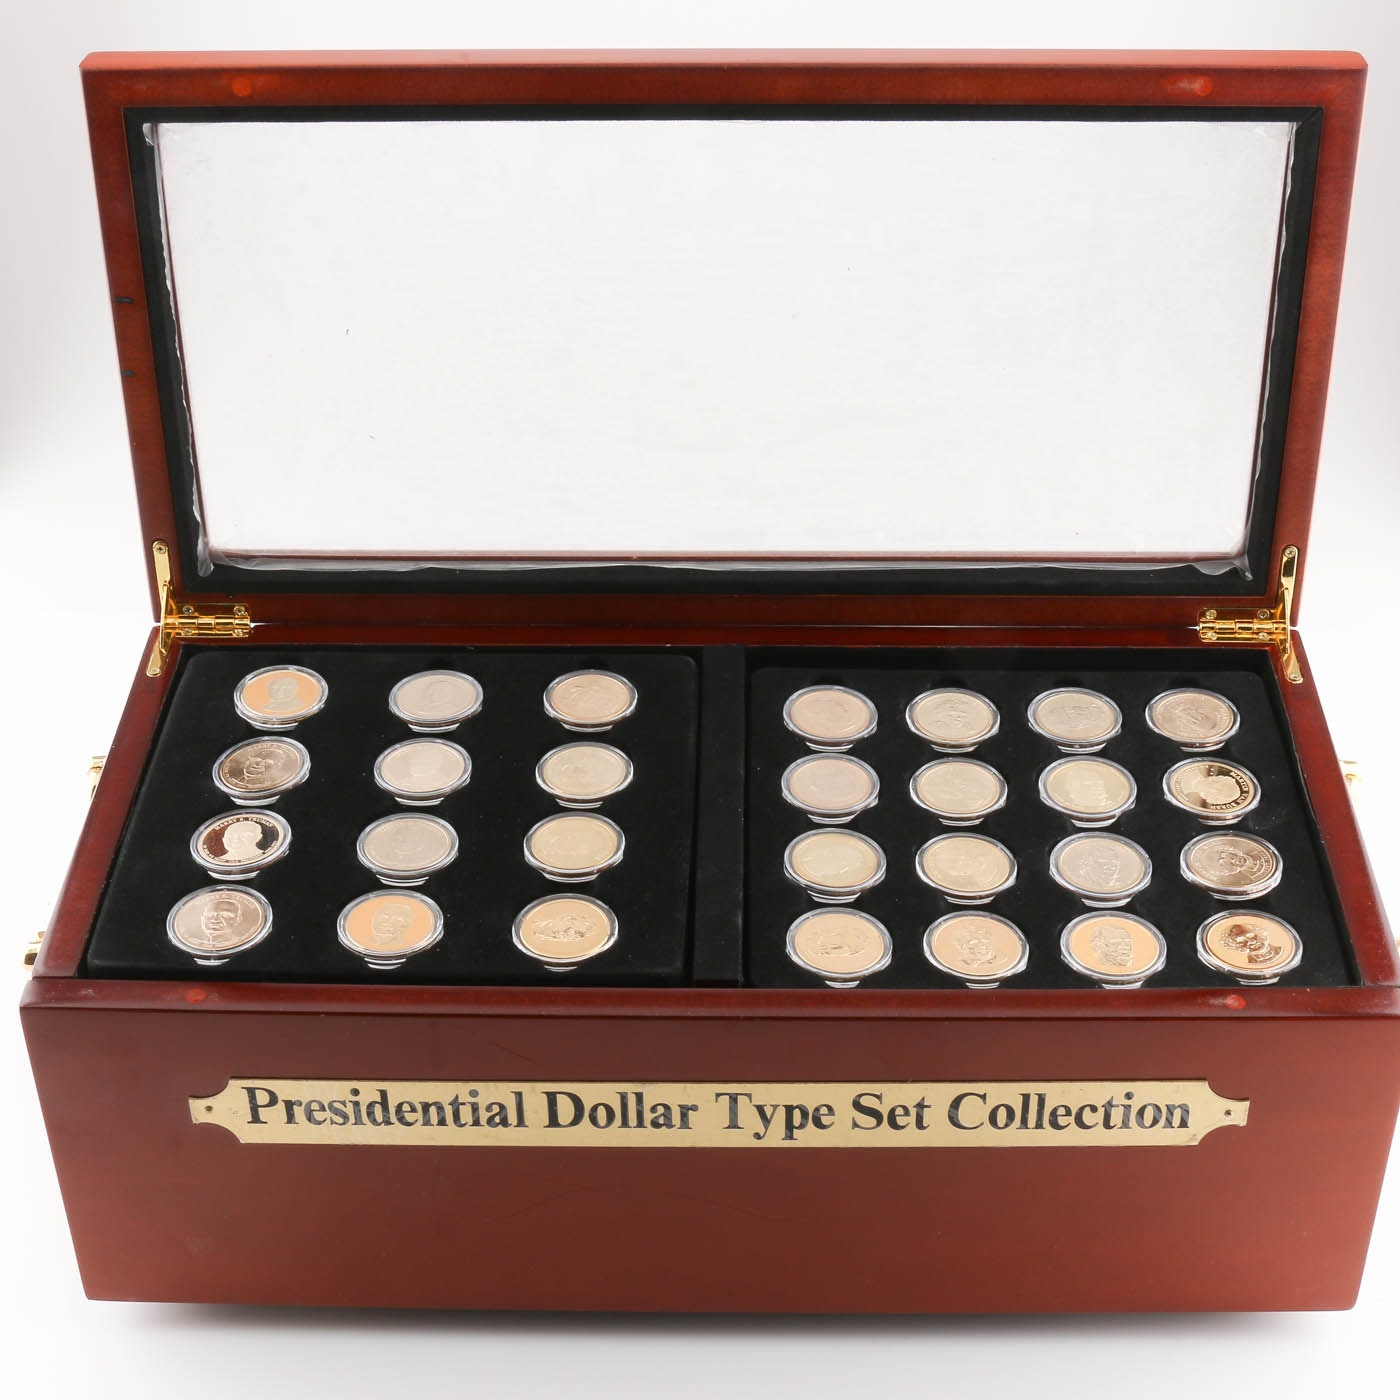 Presidential Golden Dollar Coin Type Set in a Wooden Display Case